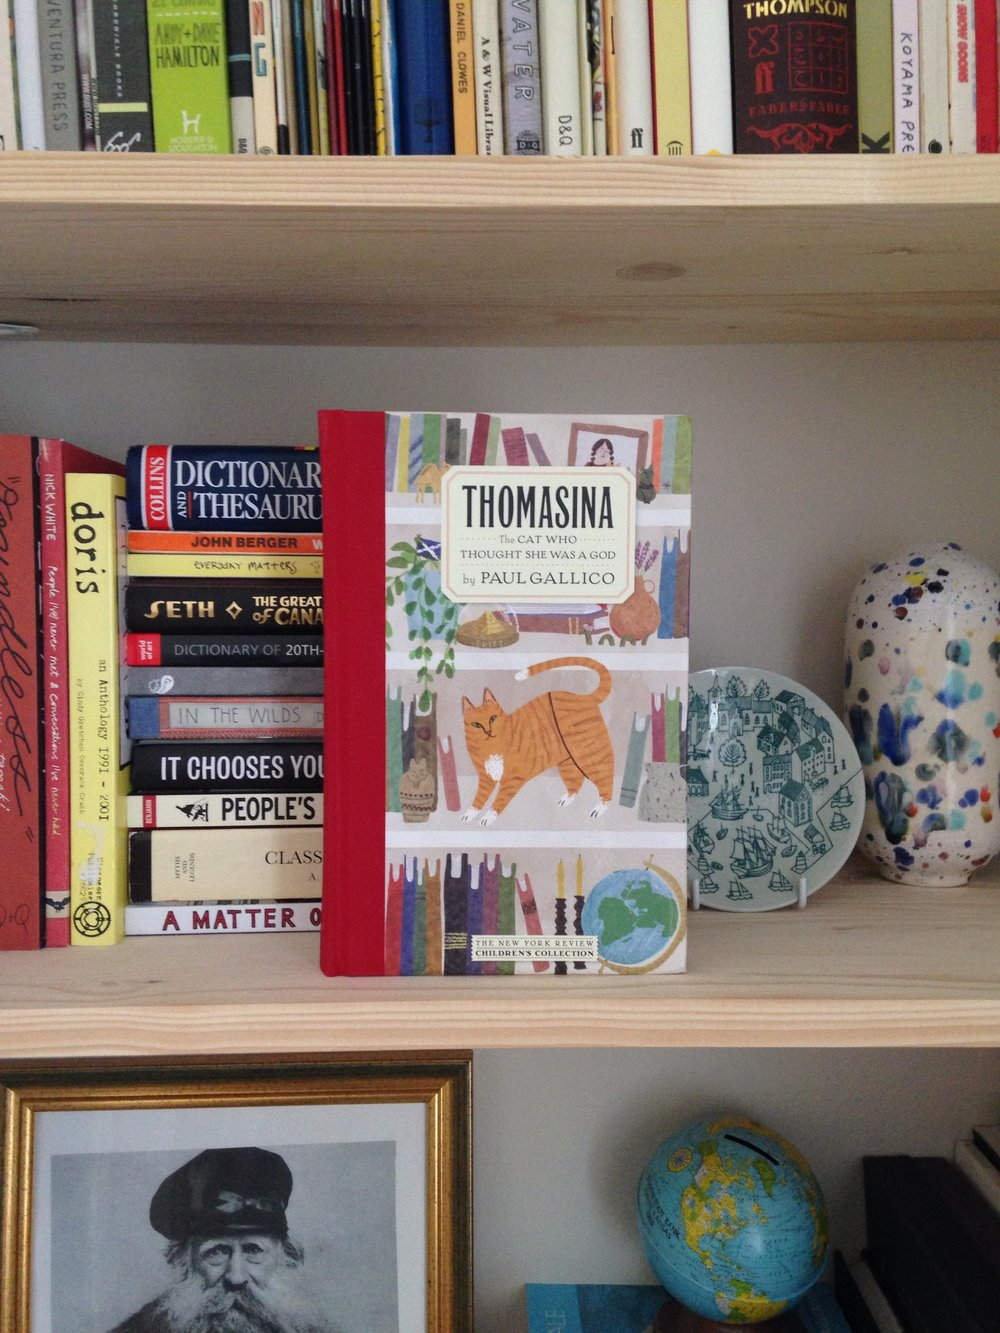 Thomasina - The Cat Who Thought She Was a God by Paul Gallico - hardcover book propped up on a bookshelf